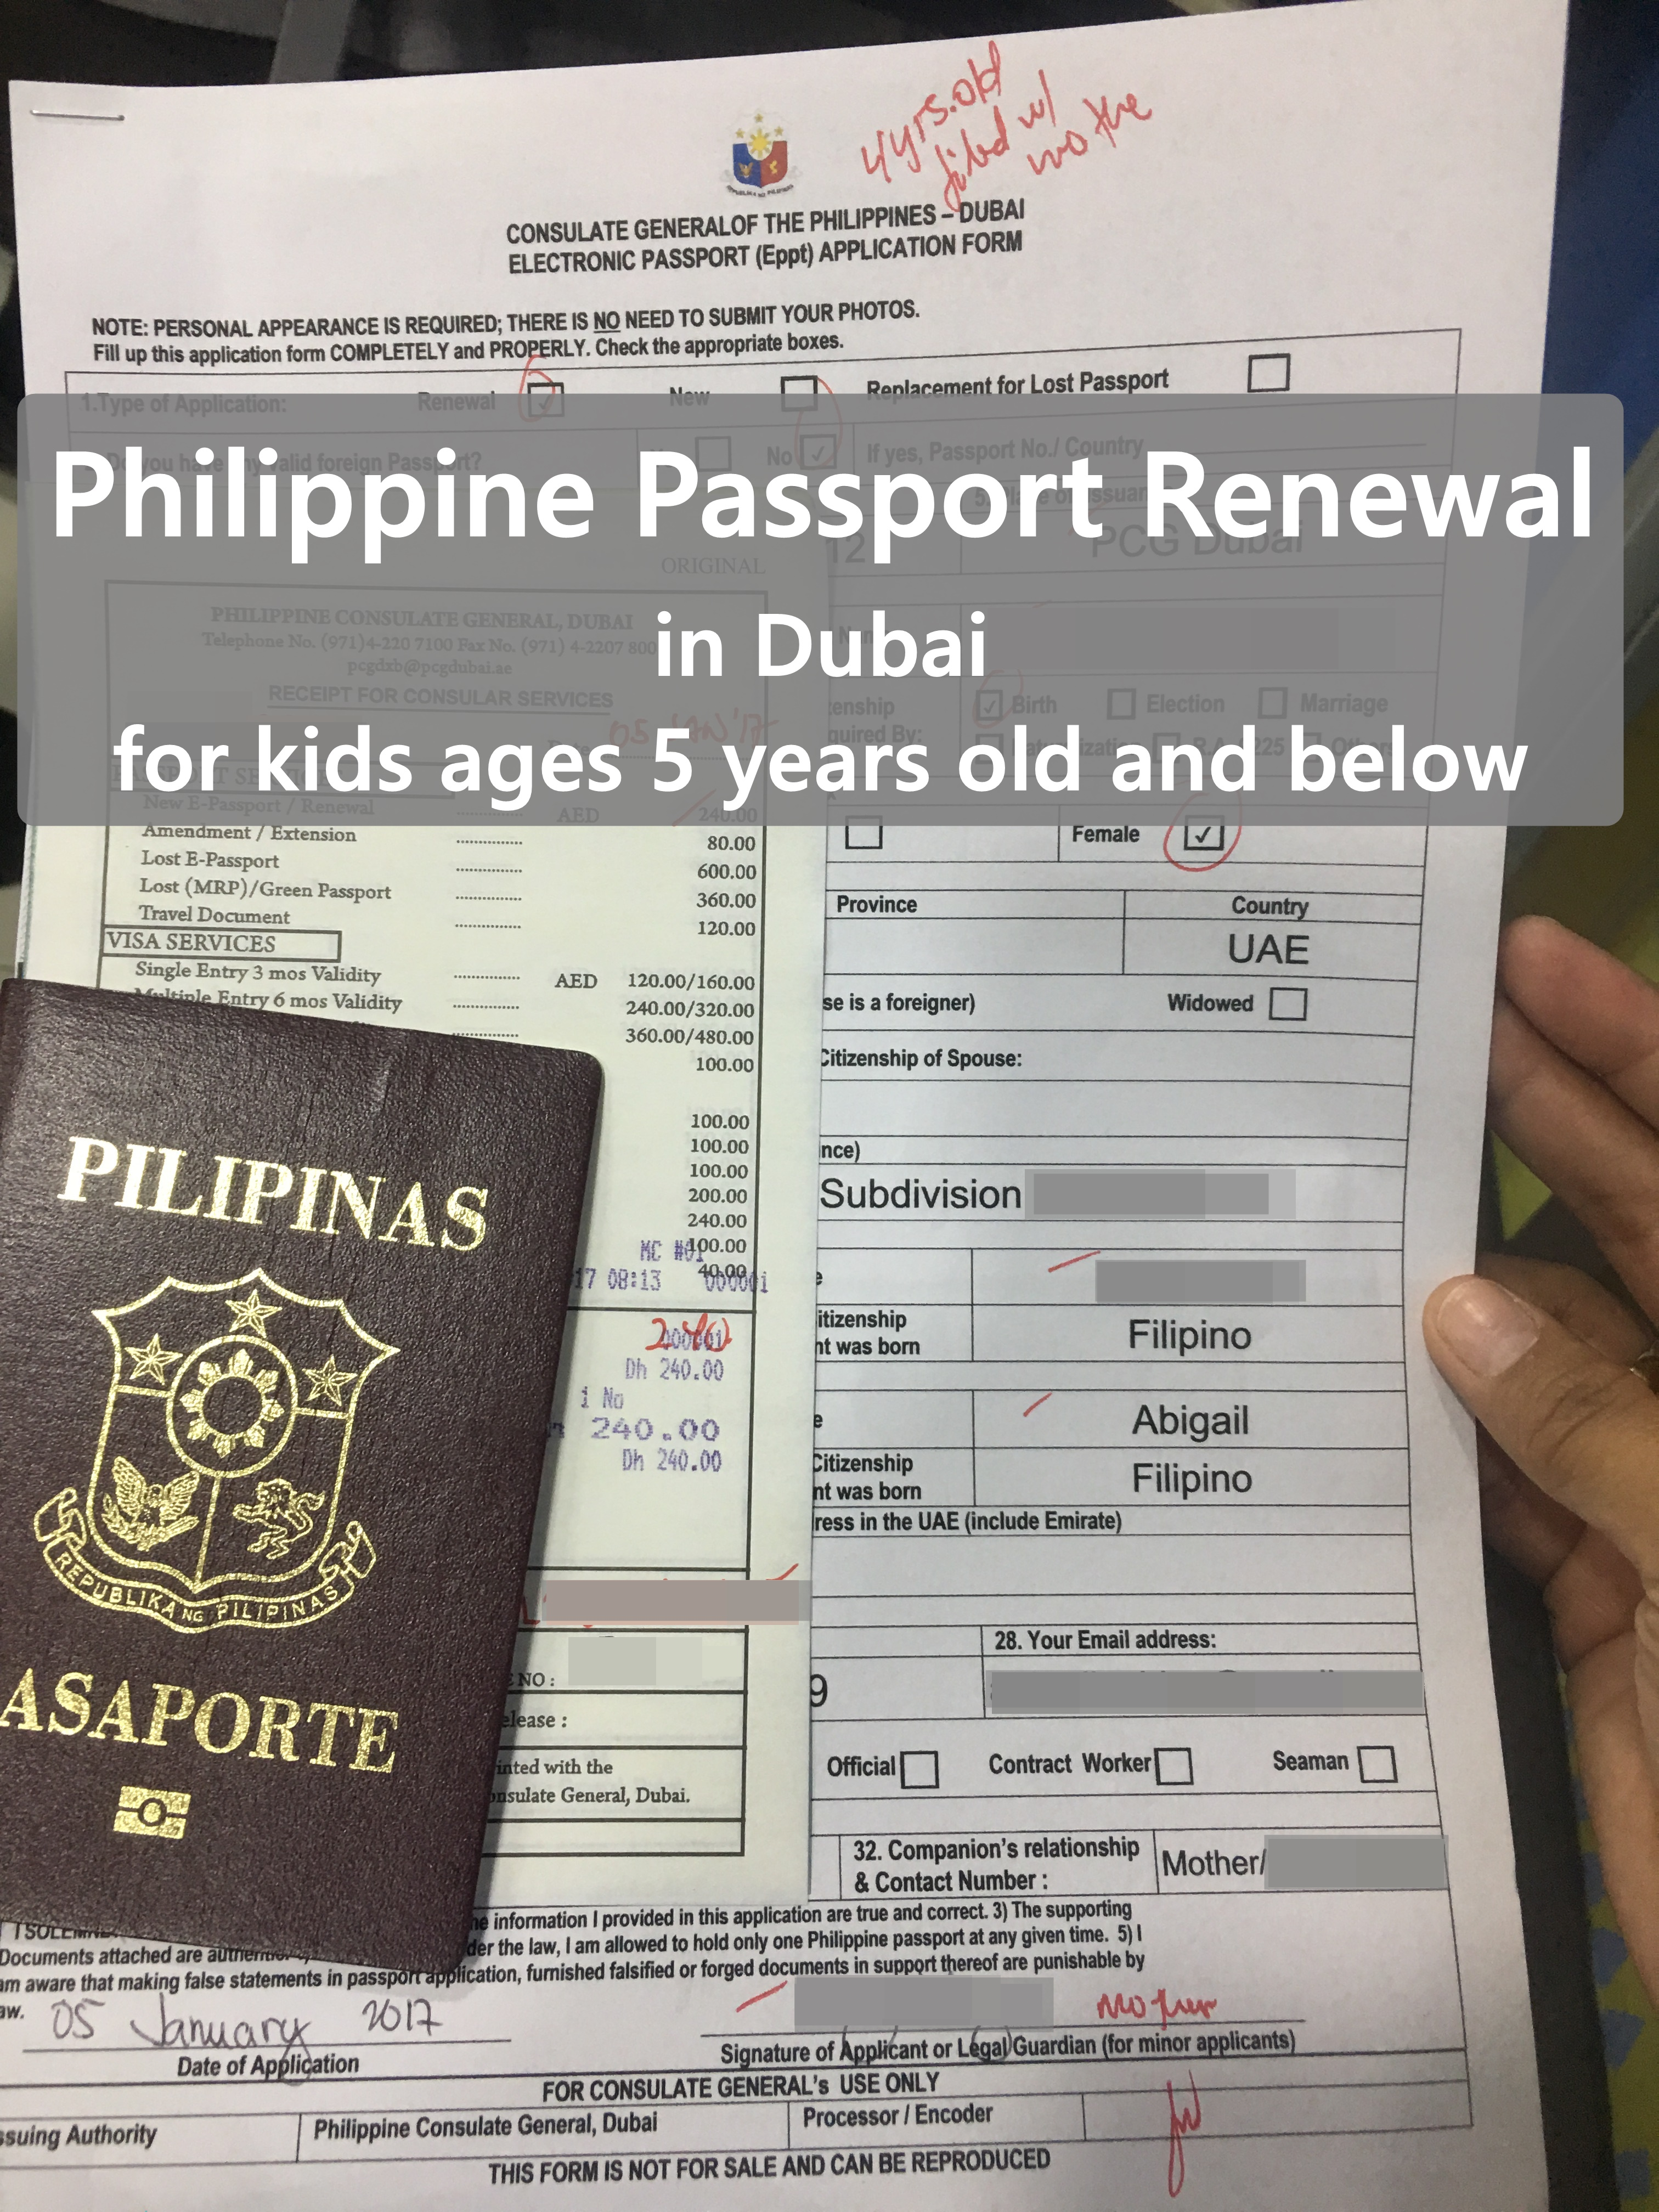 Philippine Passport Renewal in Dubai for Kids | Cuddles and Crumbs